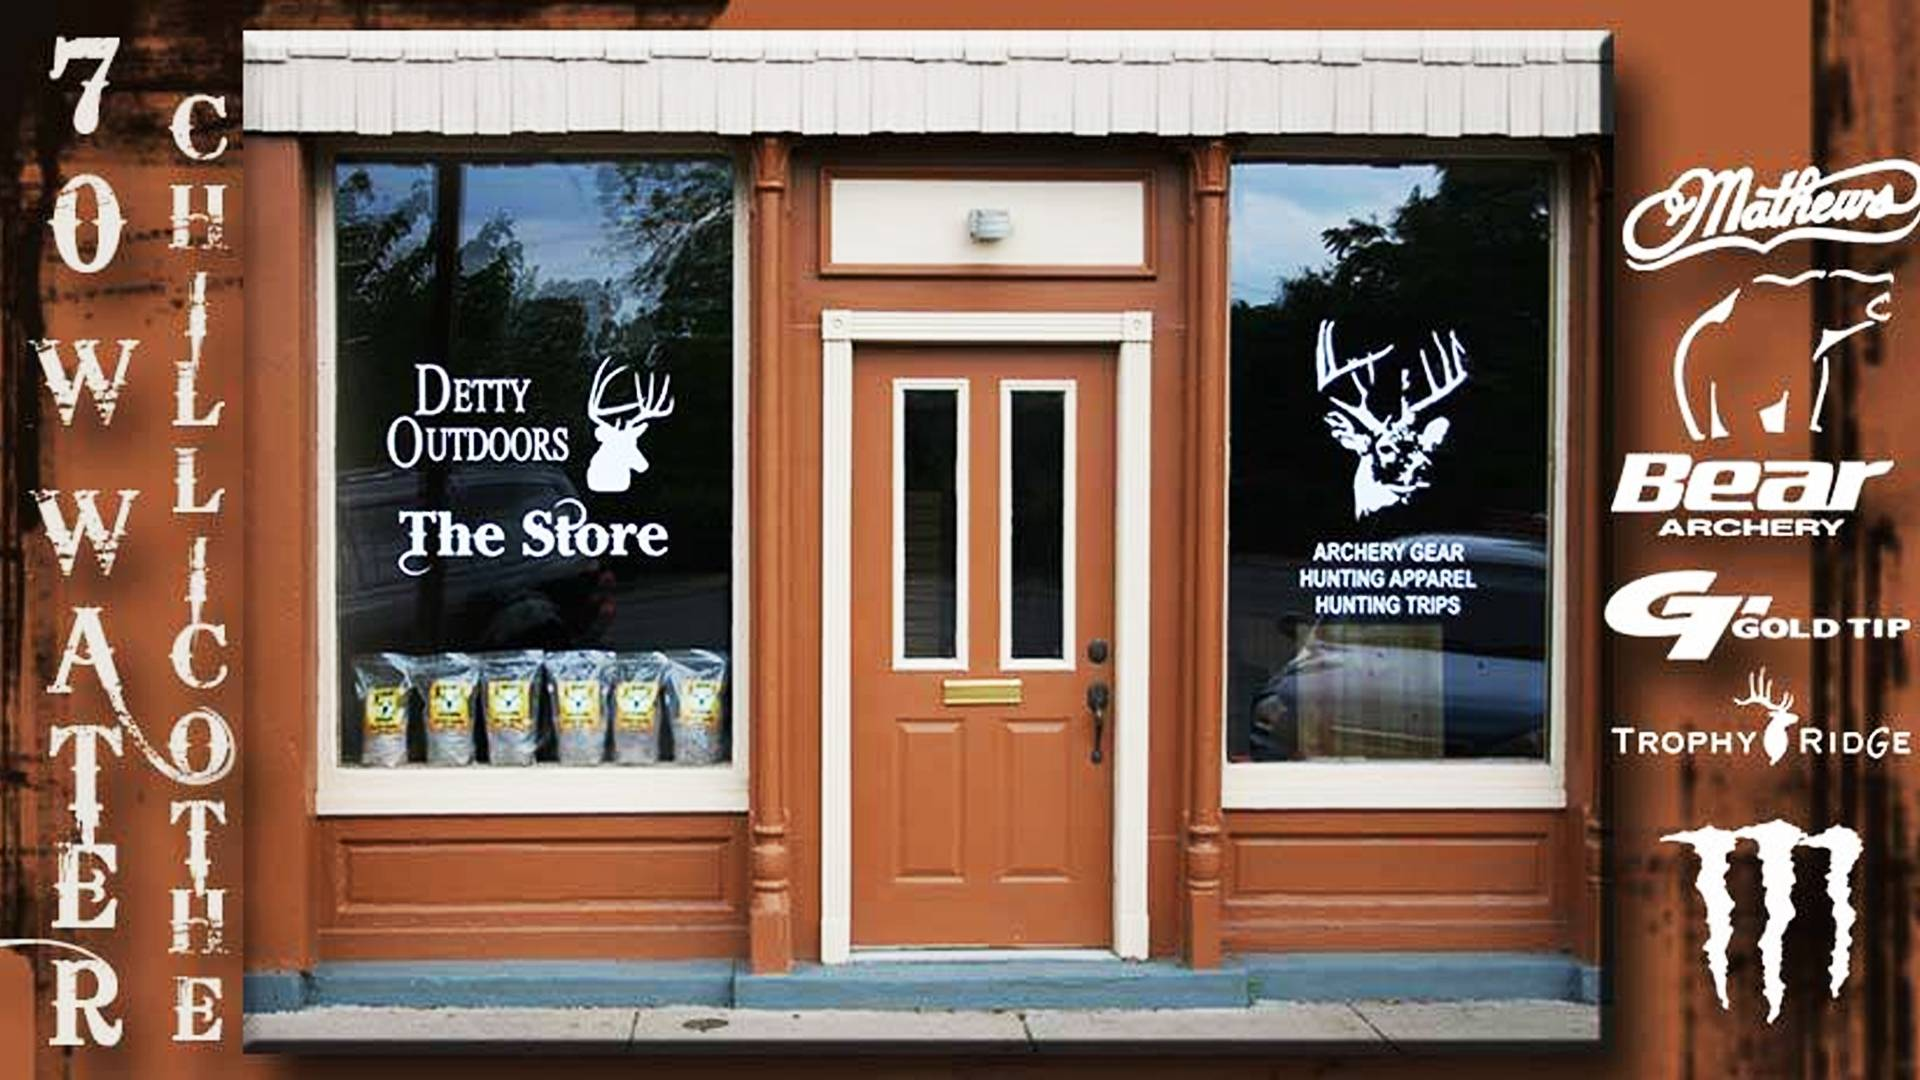 Detty Outdoors LLC, 70 W. Water St., Chillicothe, Ohio, 45601, United States